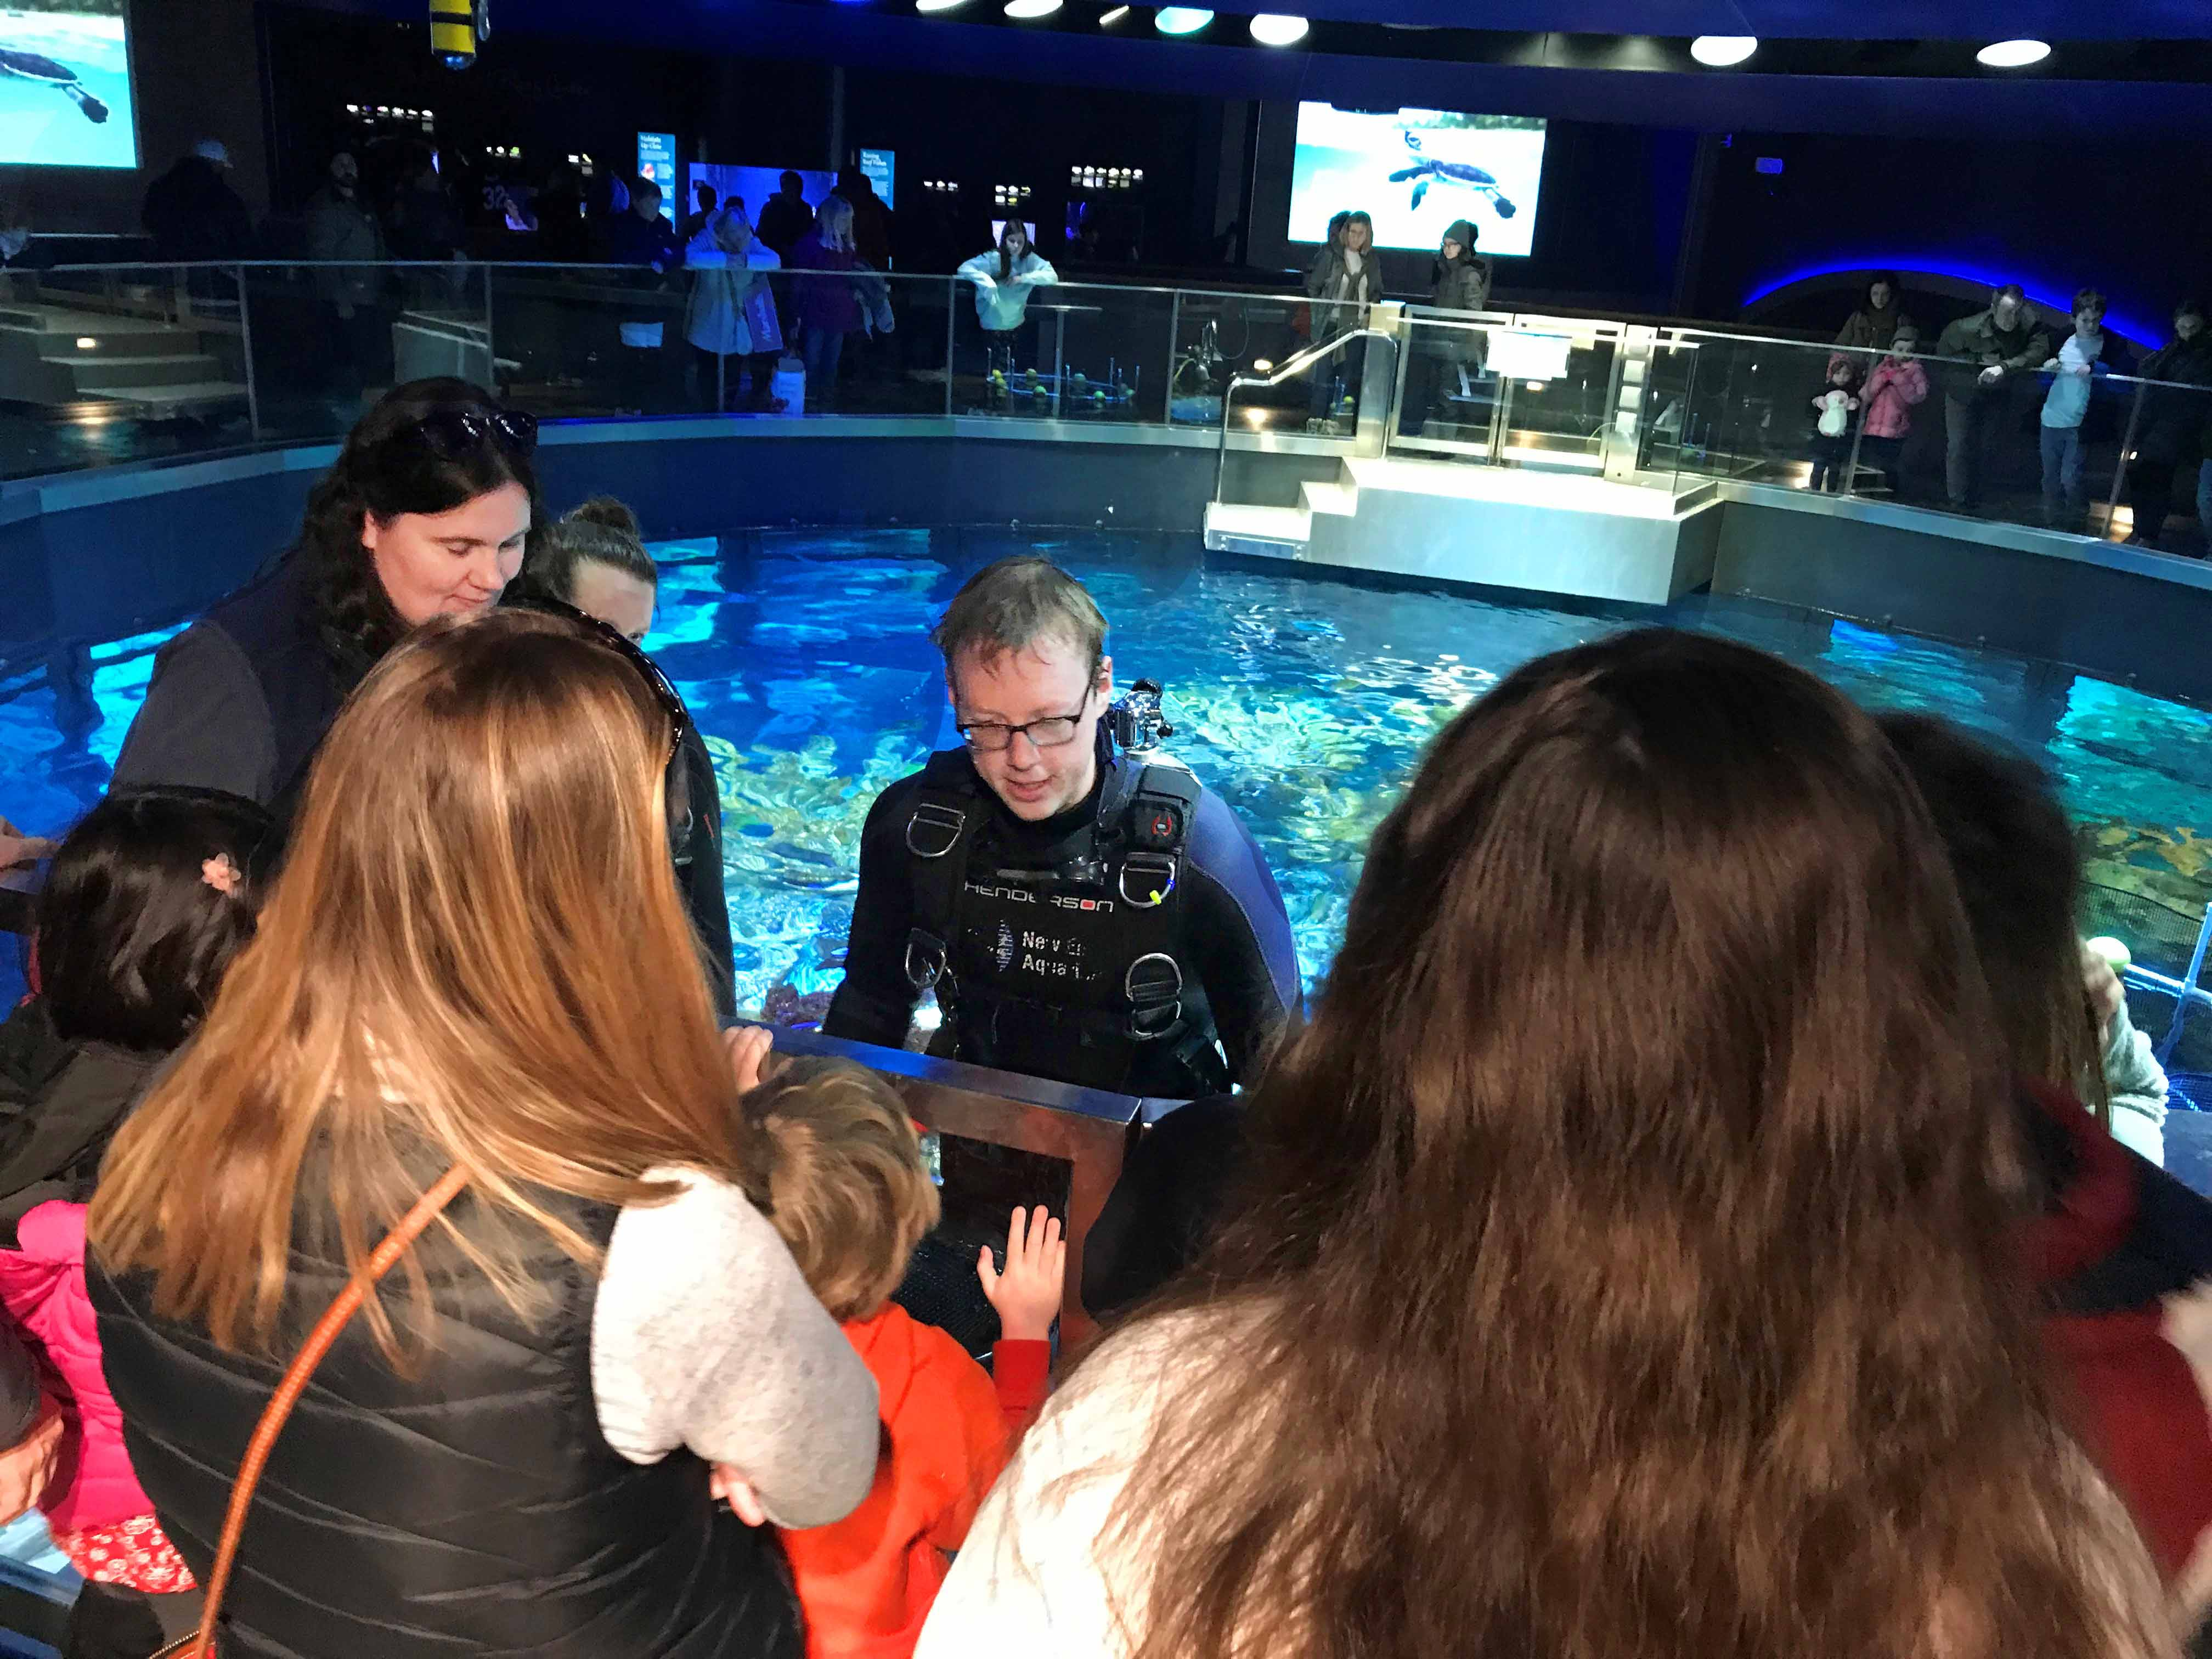 Mike O'Neill, supervisor of the Giant Ocean Tank at the New England Aquarium, talks to visitors during an on-site visitor advocacy campaign focusing on 30x30.